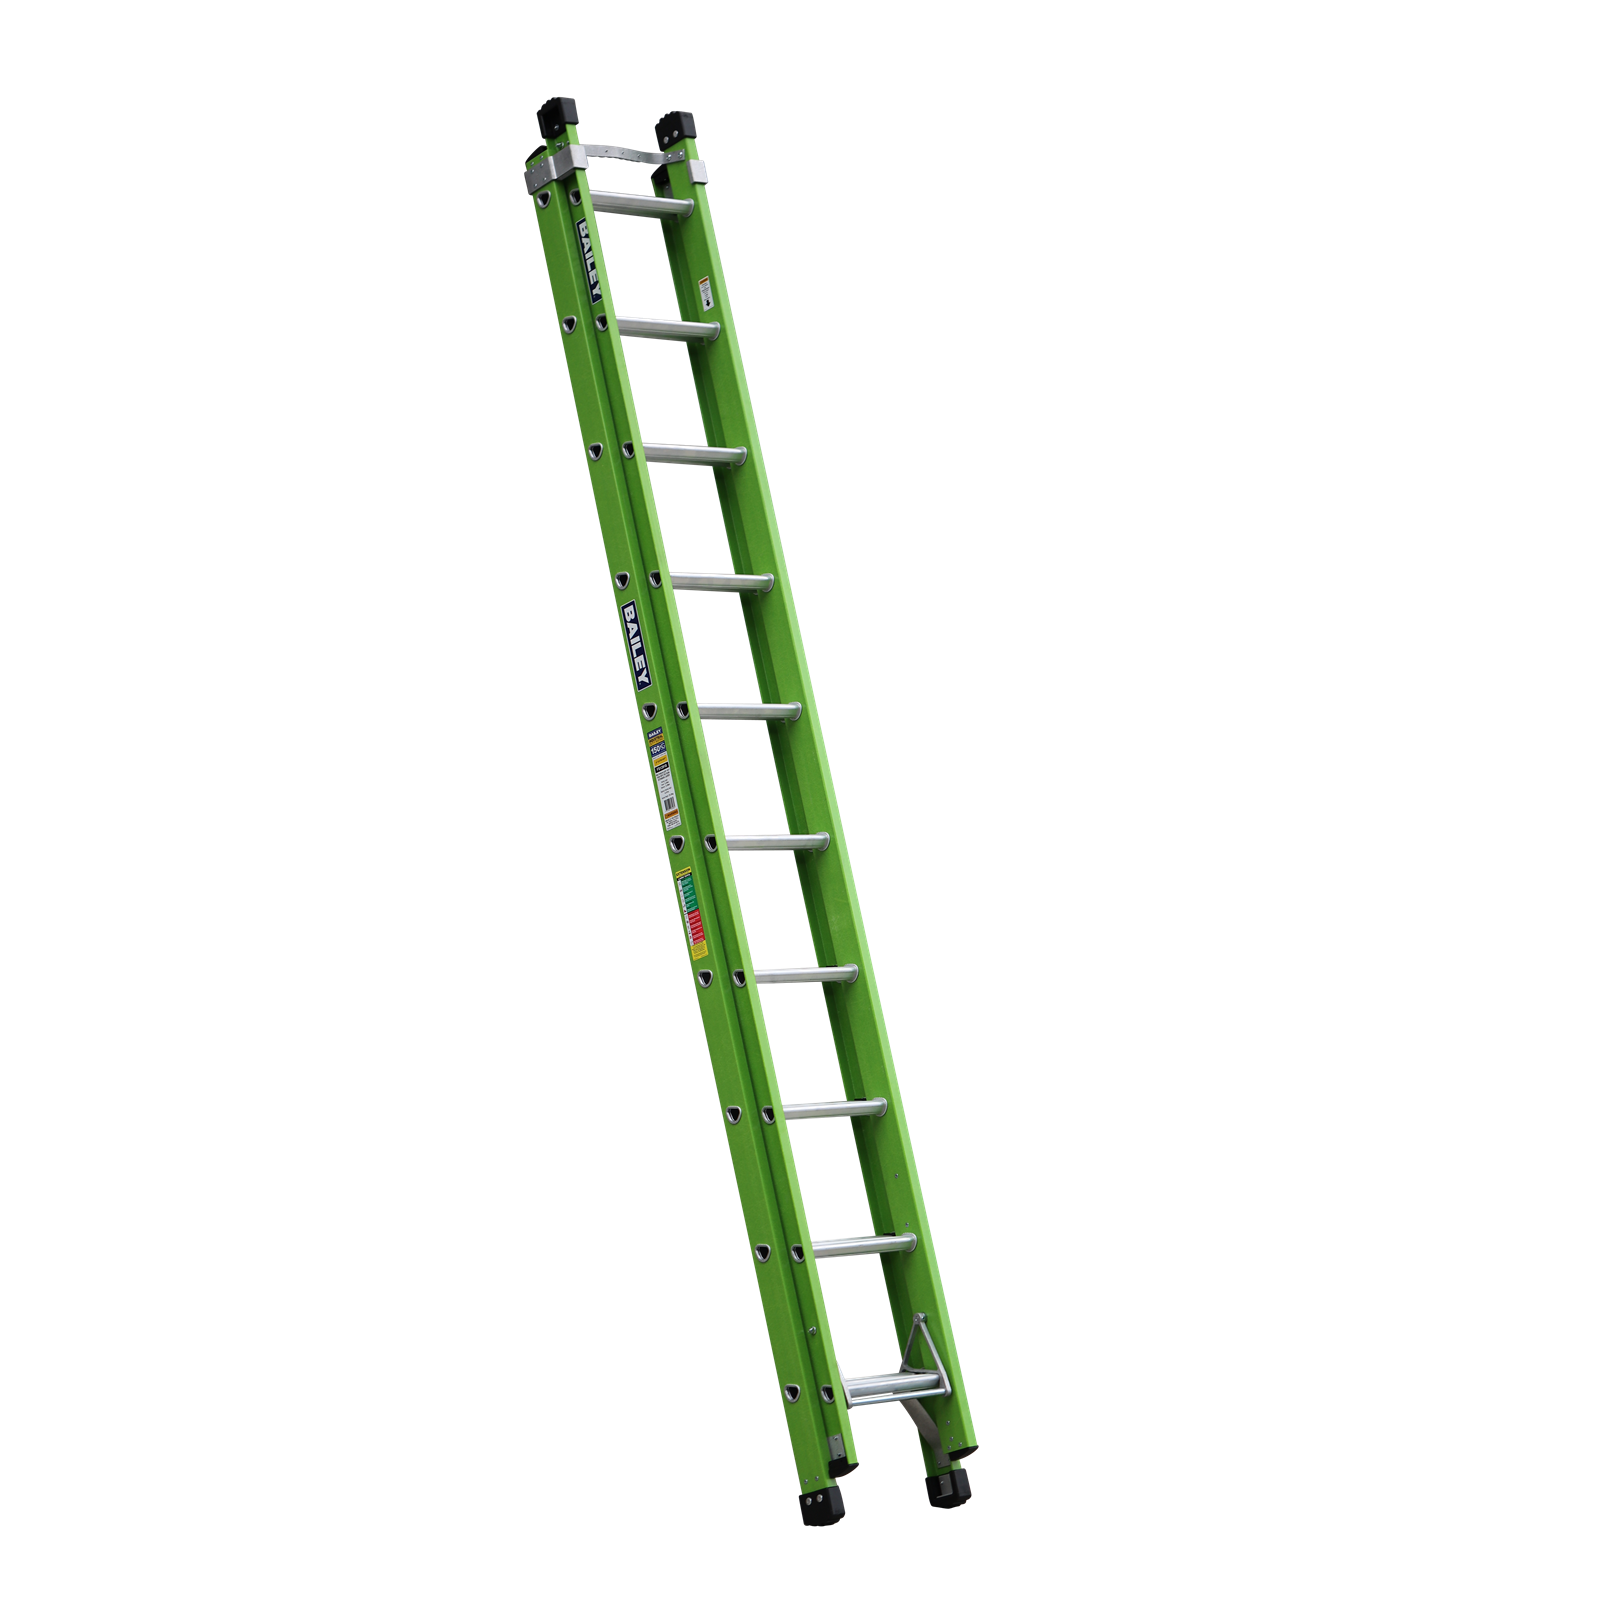 Bailey 3.2-5.3m 150kg Industrial Rated Pro 10 Rung Fibreglass Extension Ladder